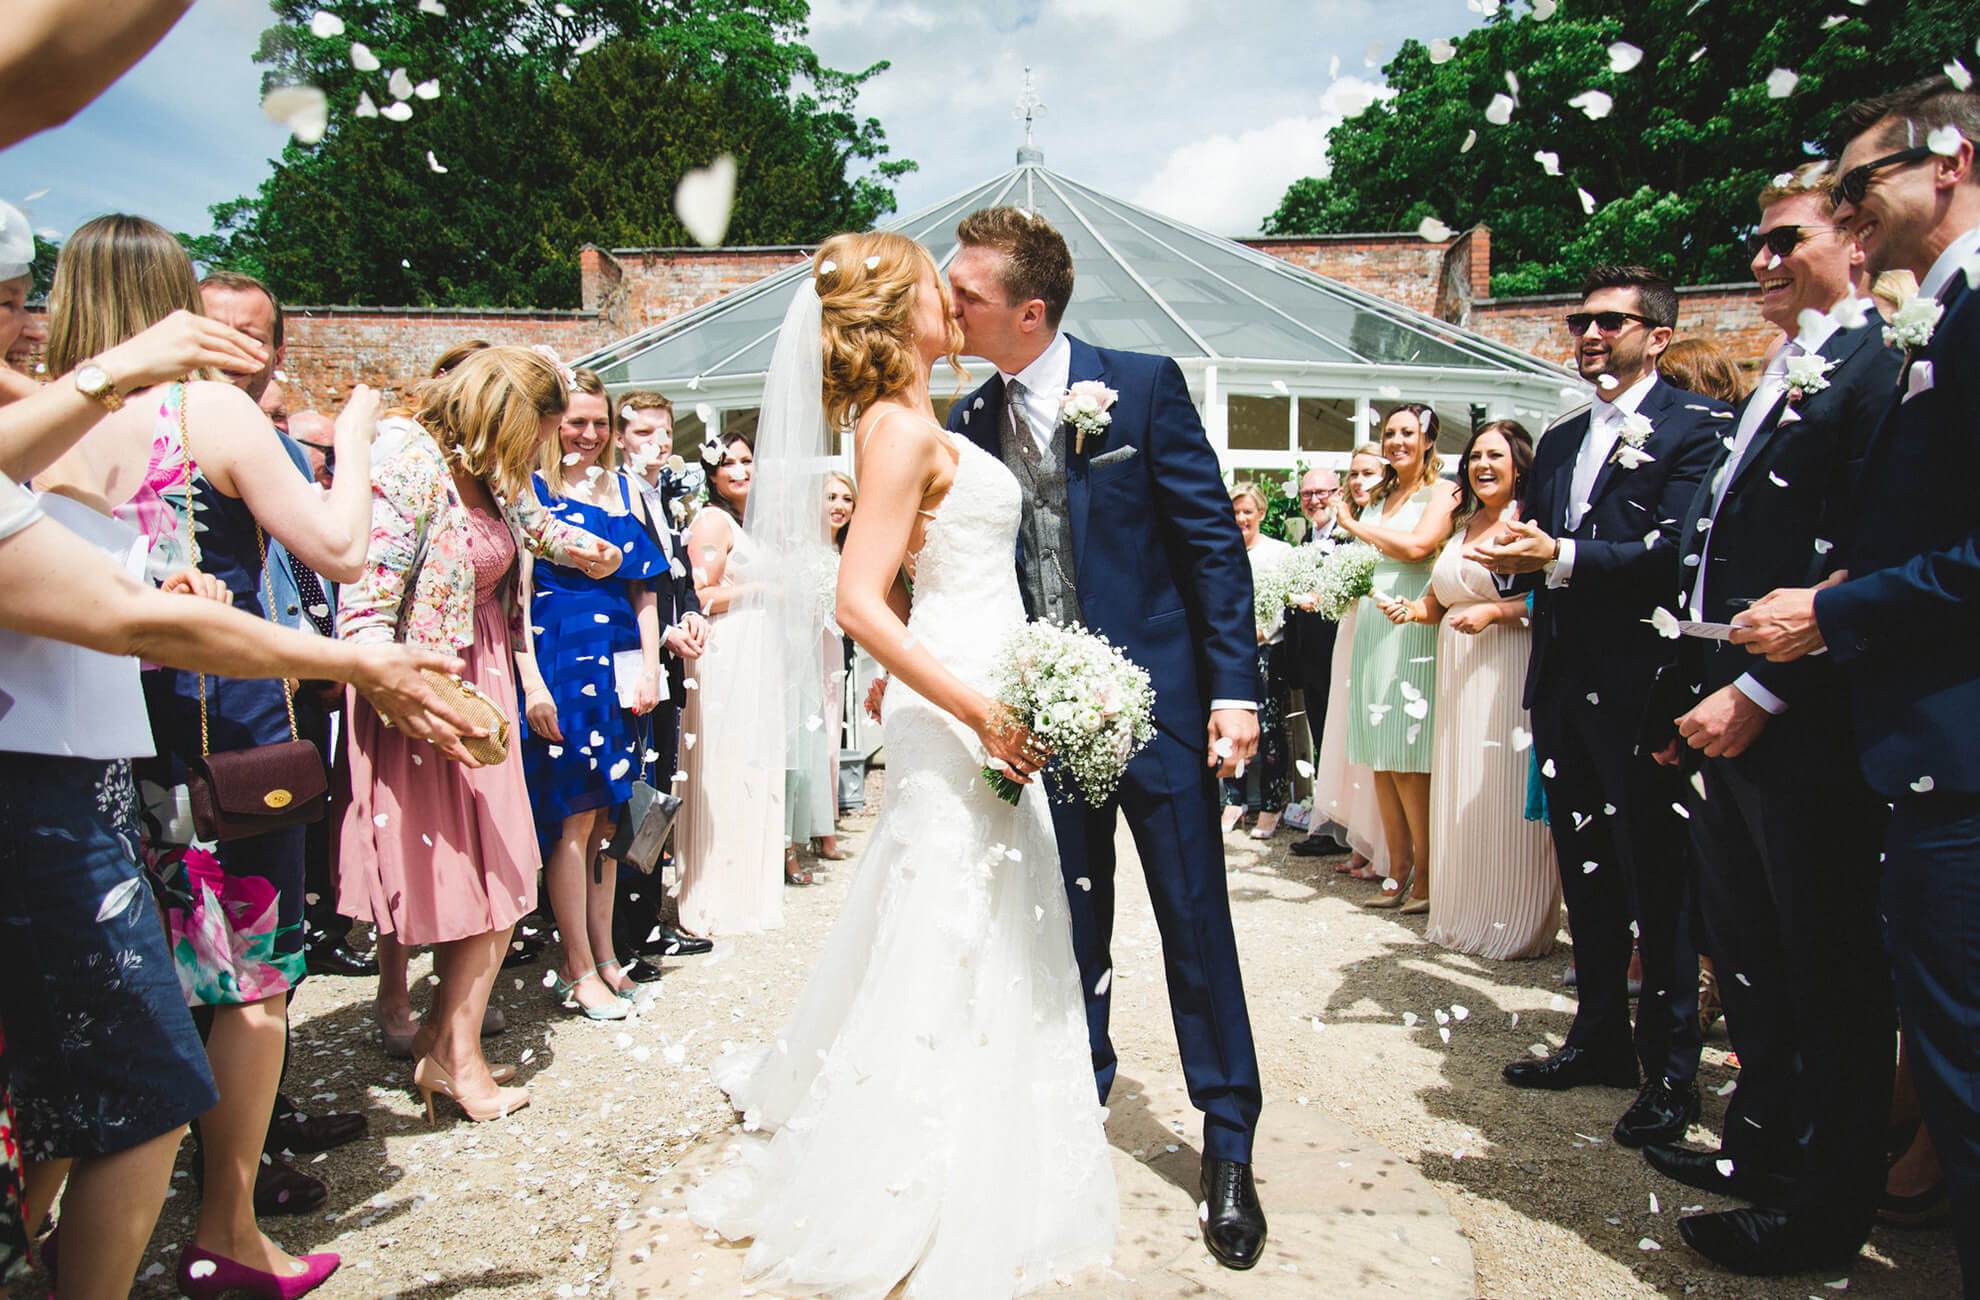 The bride and groom share a kiss in front of The Glasshouse at Combermere Abbey as guests throw wedding confetti